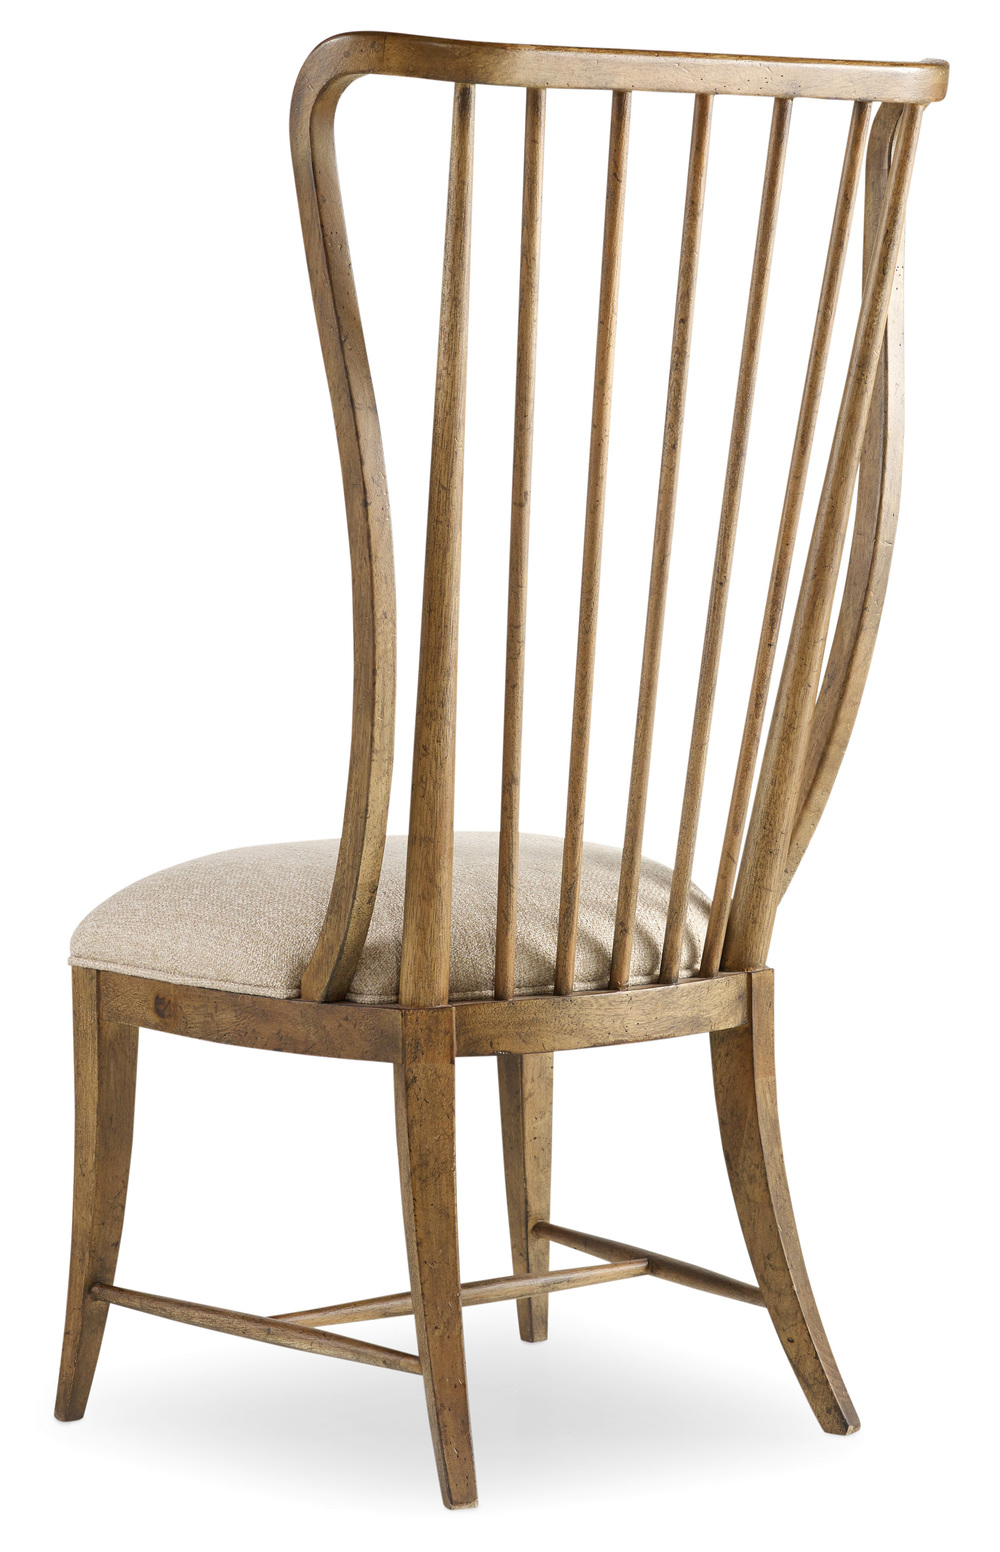 Hooker Furniture - Tall Spindle Side Chair